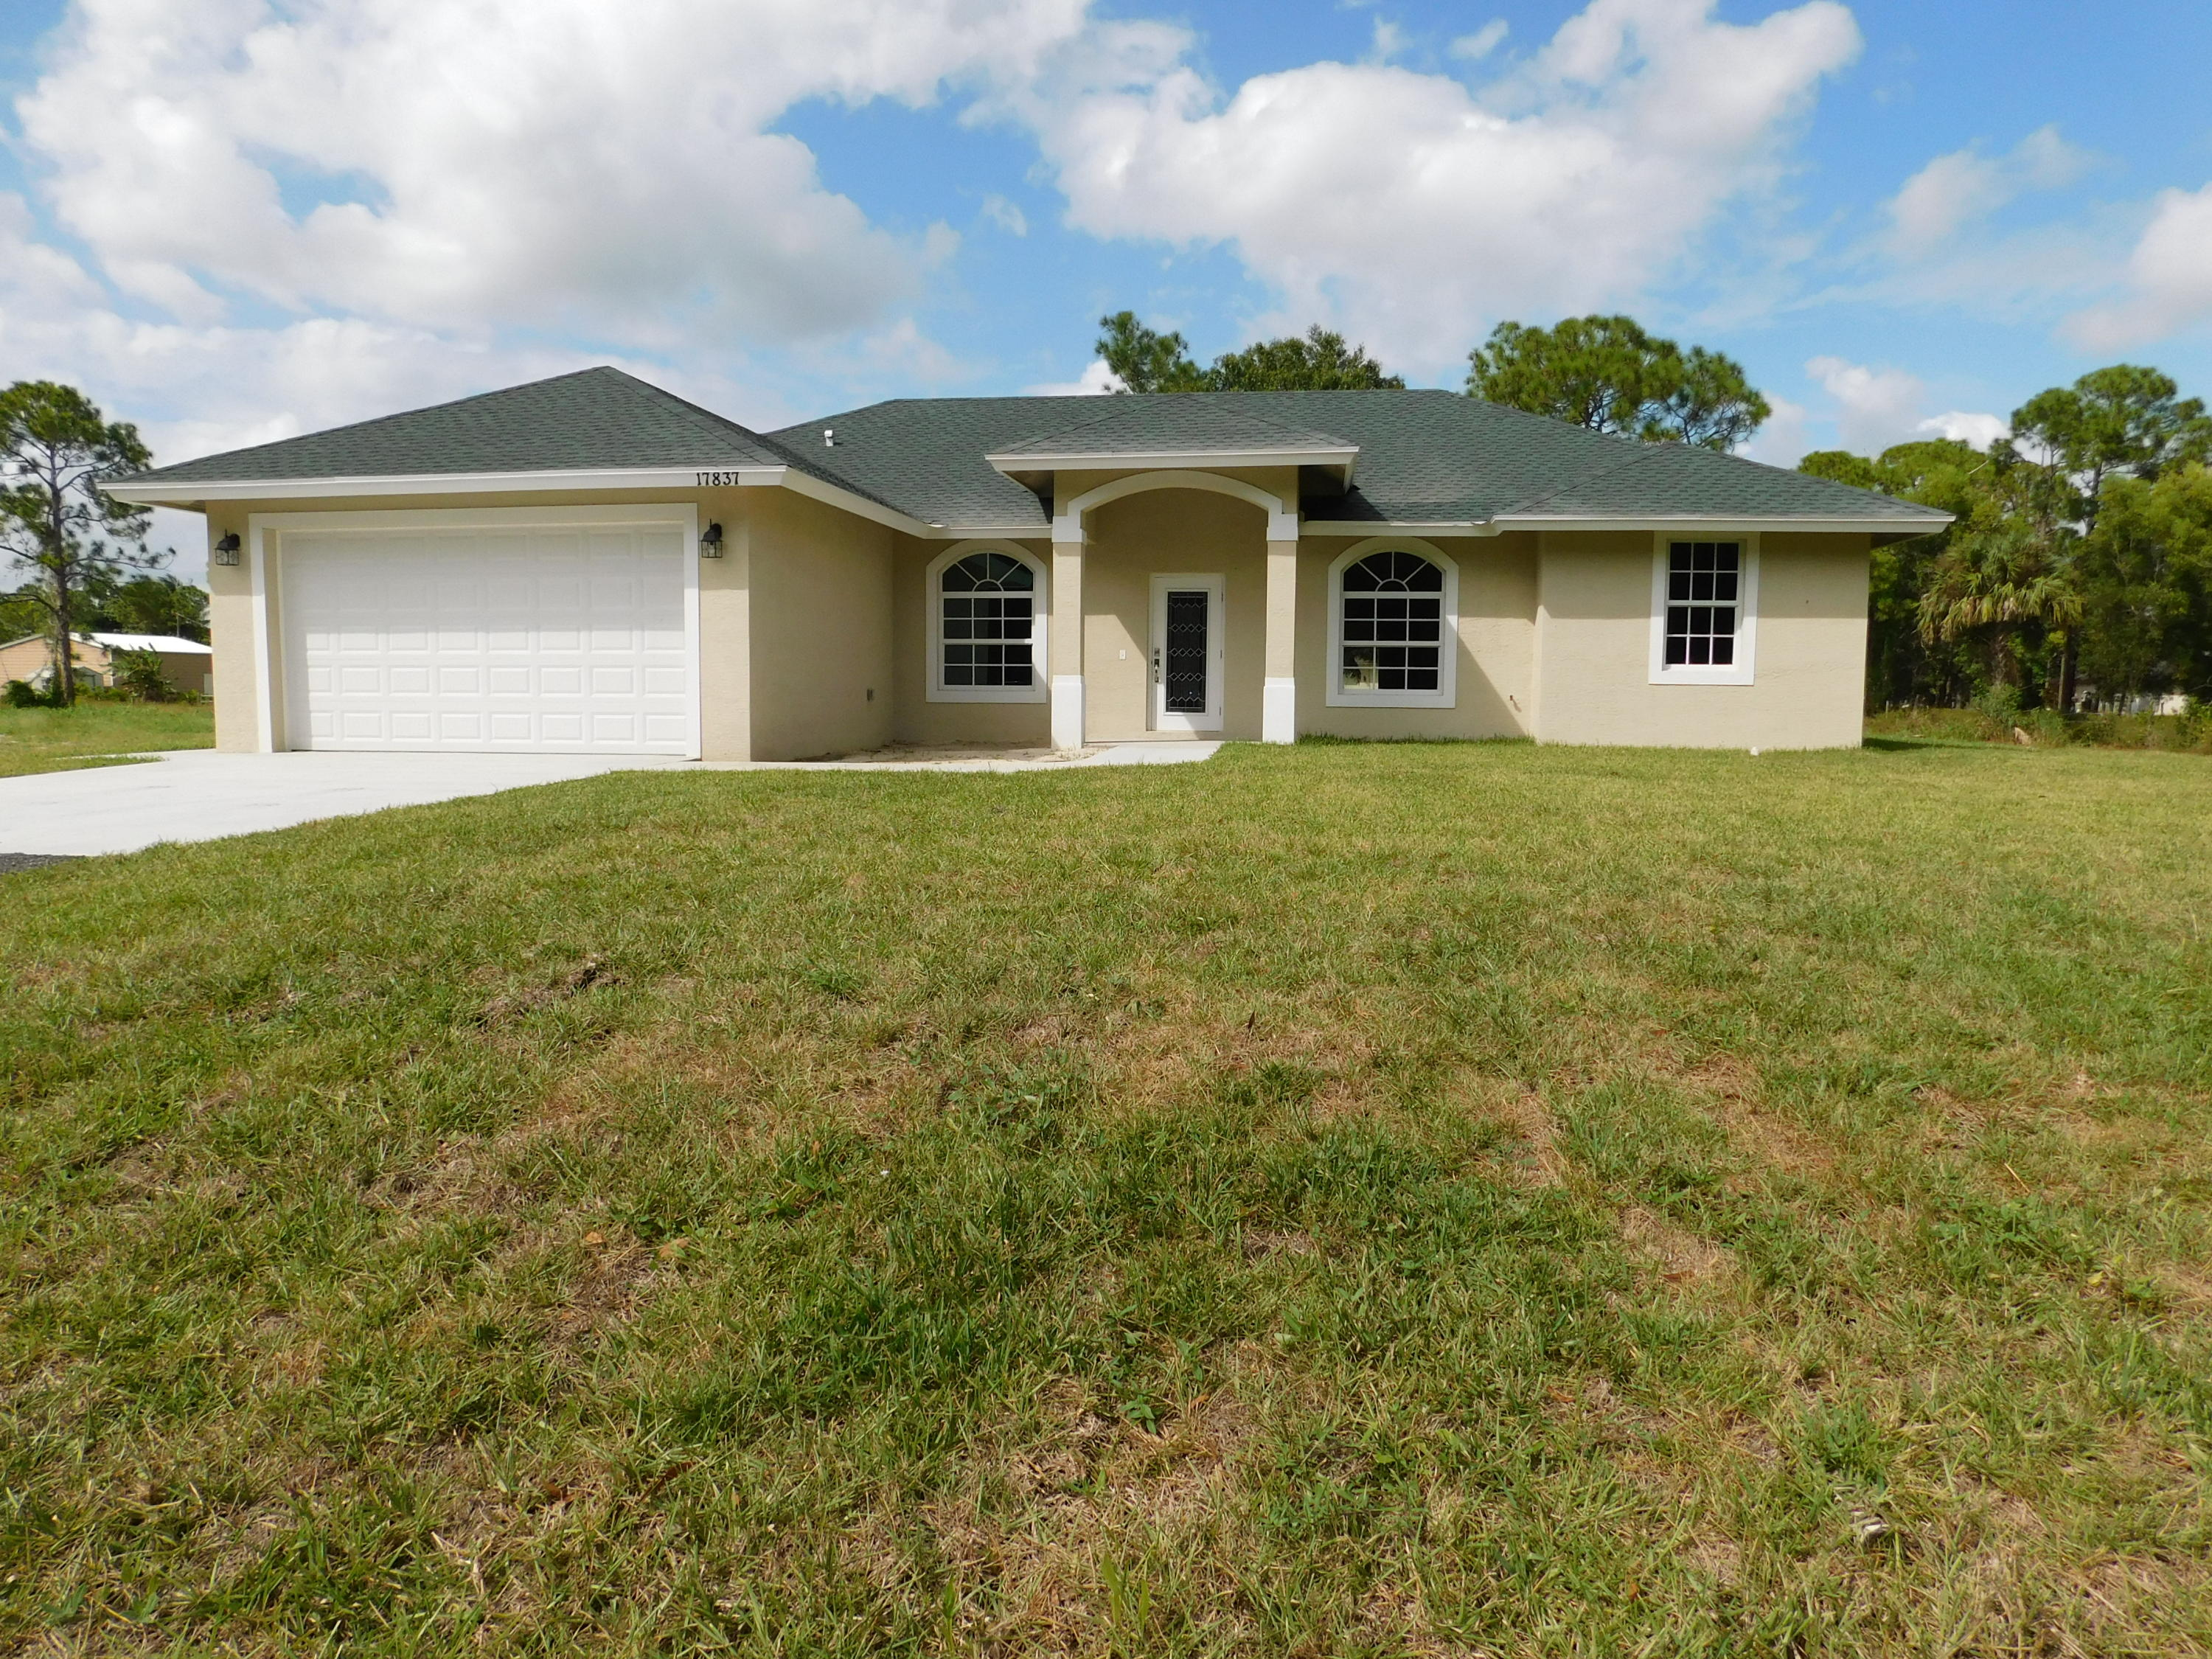 17837 47th Court N, Loxahatchee in Palm Beach County, FL 33470 Home for Sale